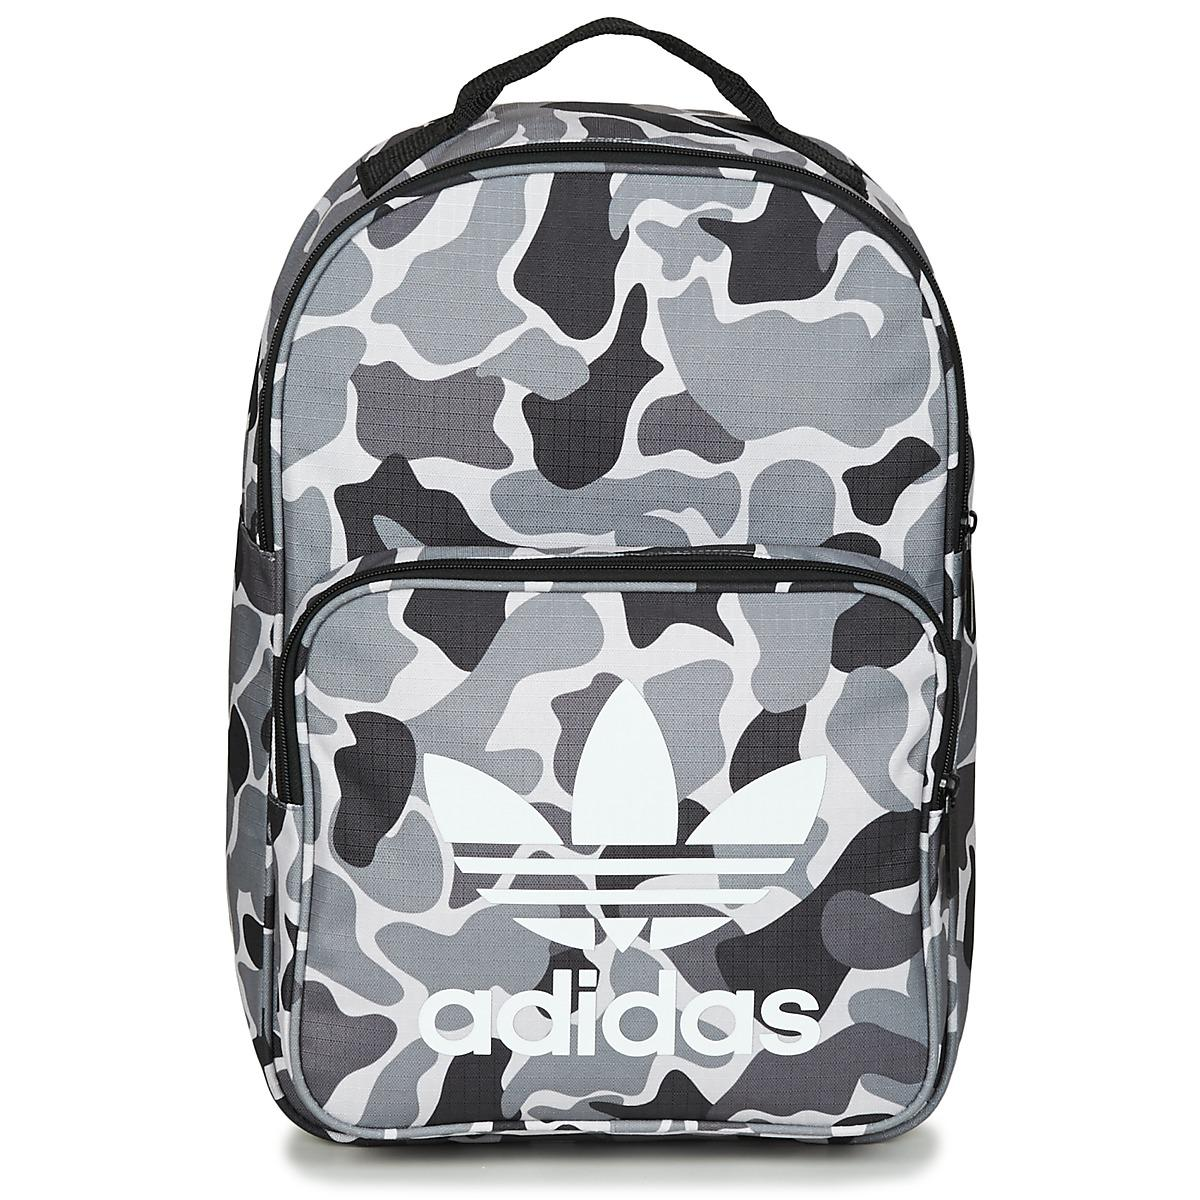 adidas Bp Classic Camo Women s Backpack In Grey in Gray for Men - Lyst 9d493cb71976b